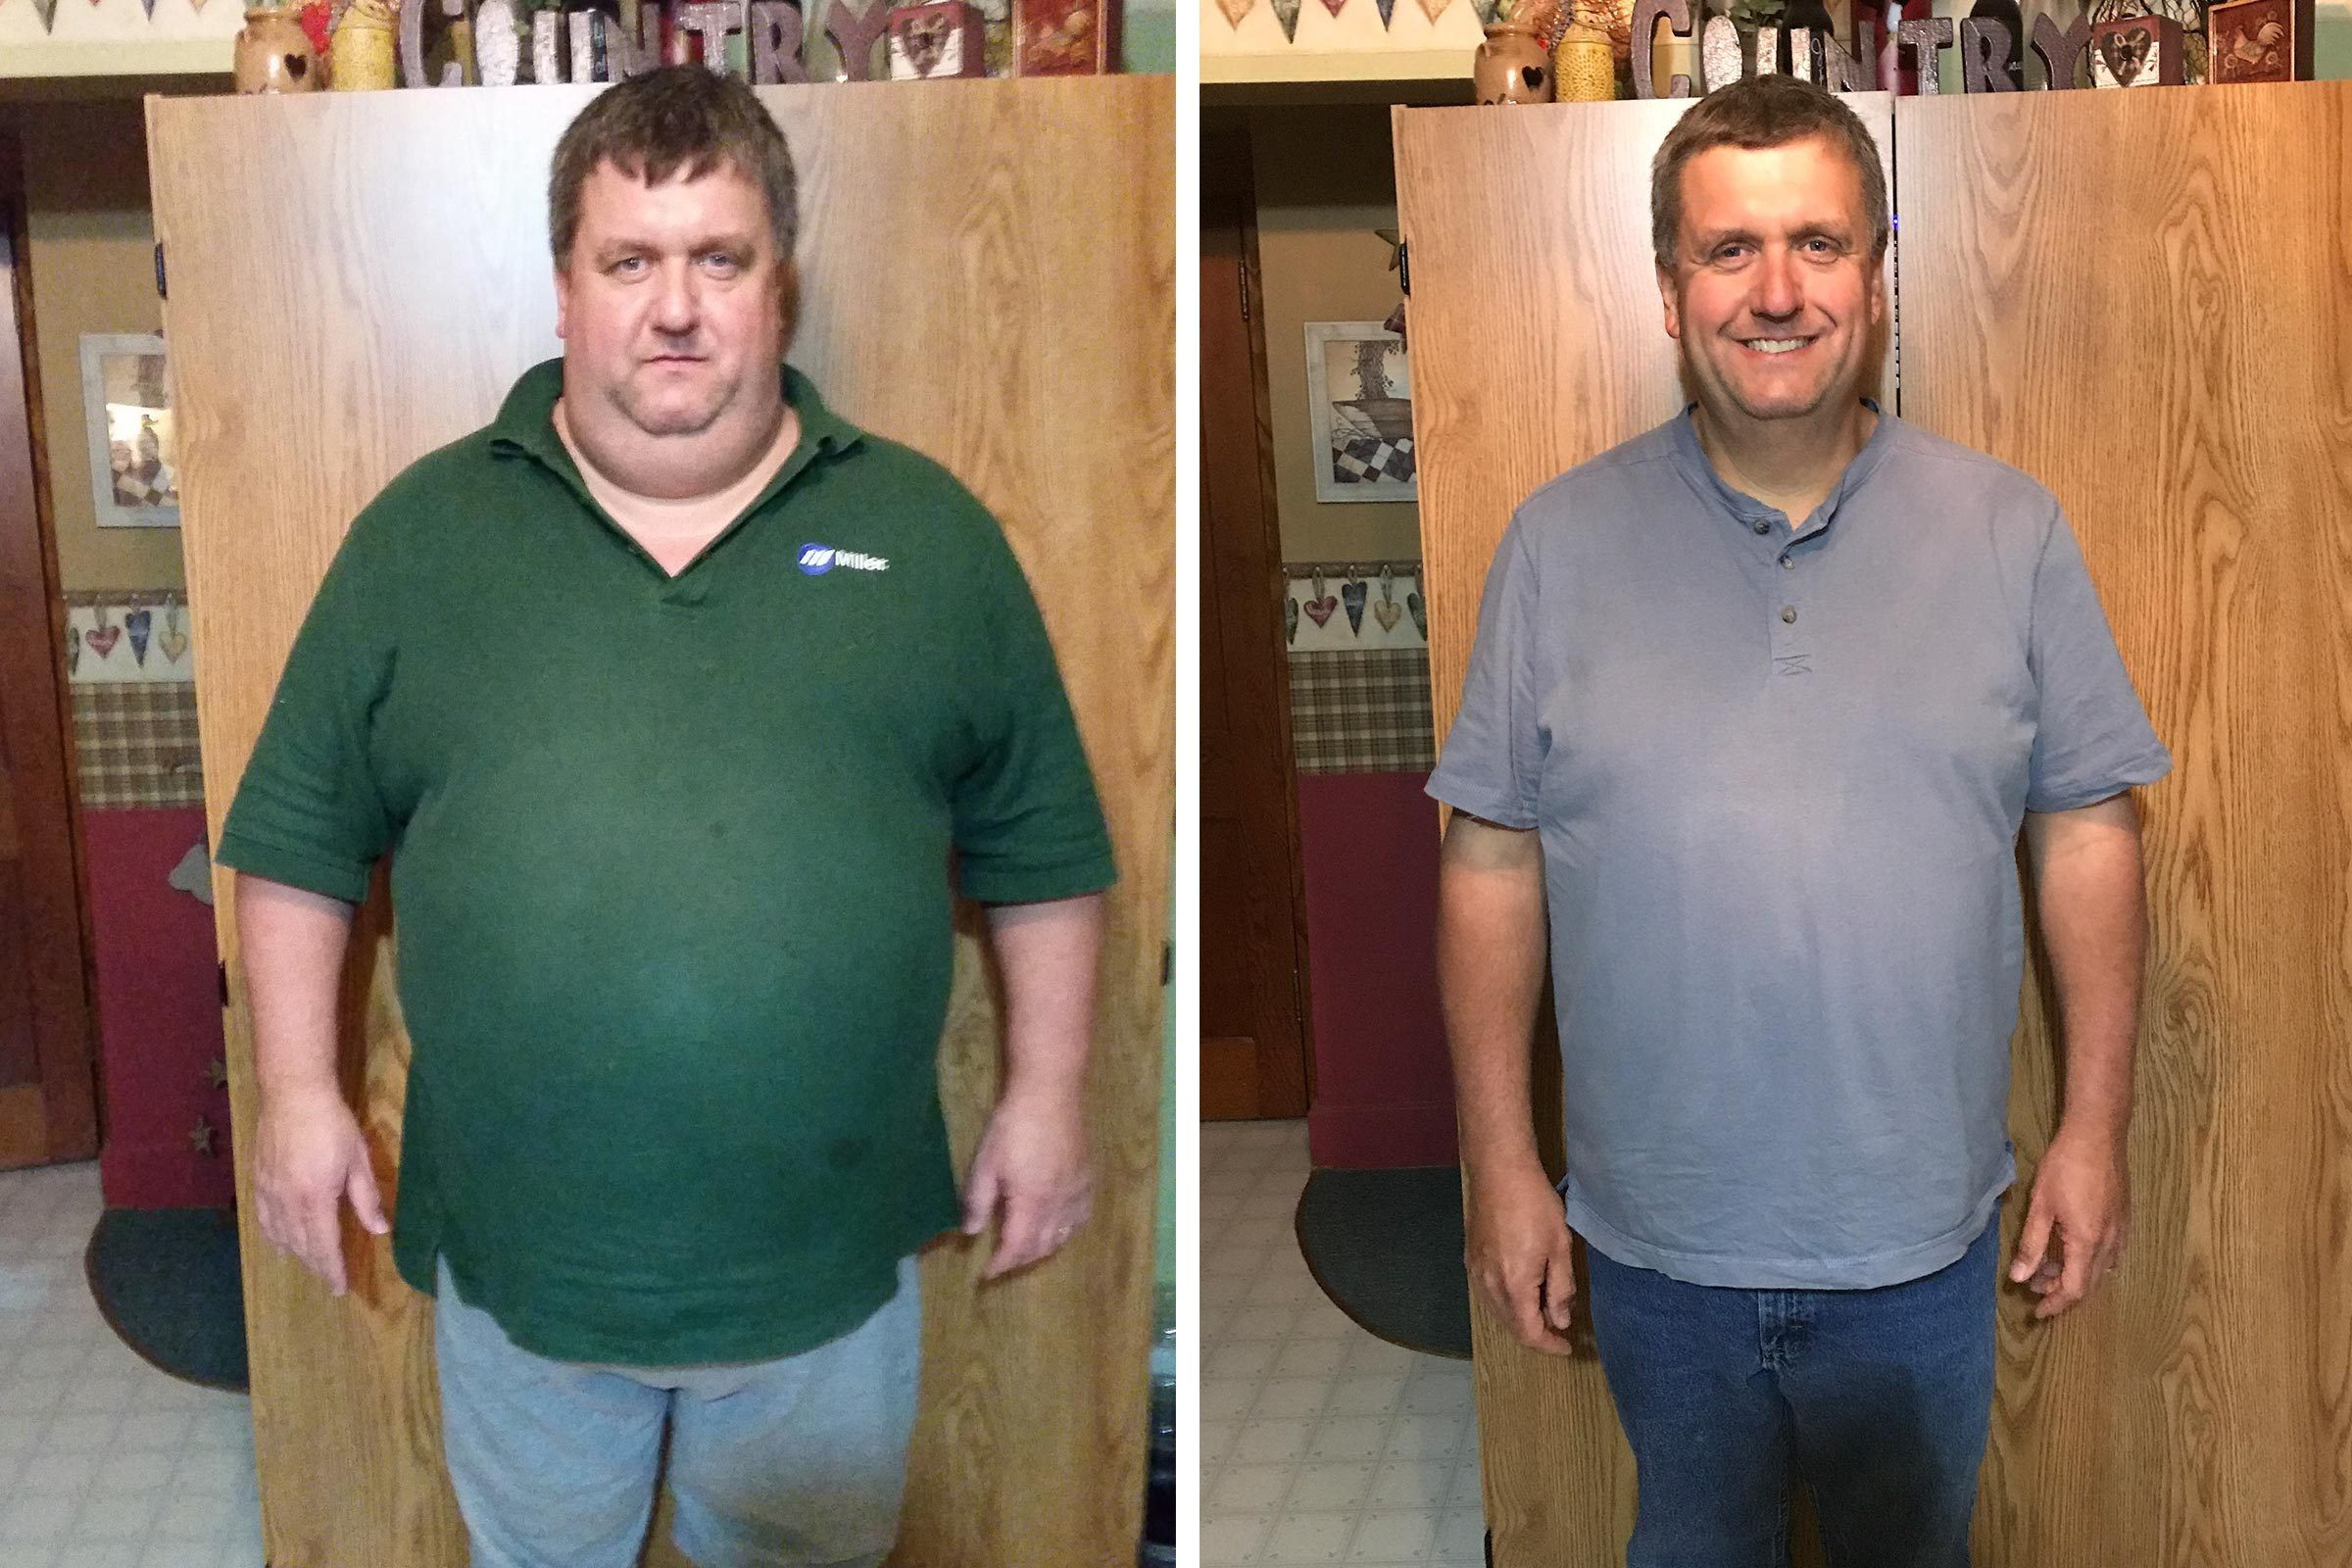 How to lose 50 pounds in 1 month